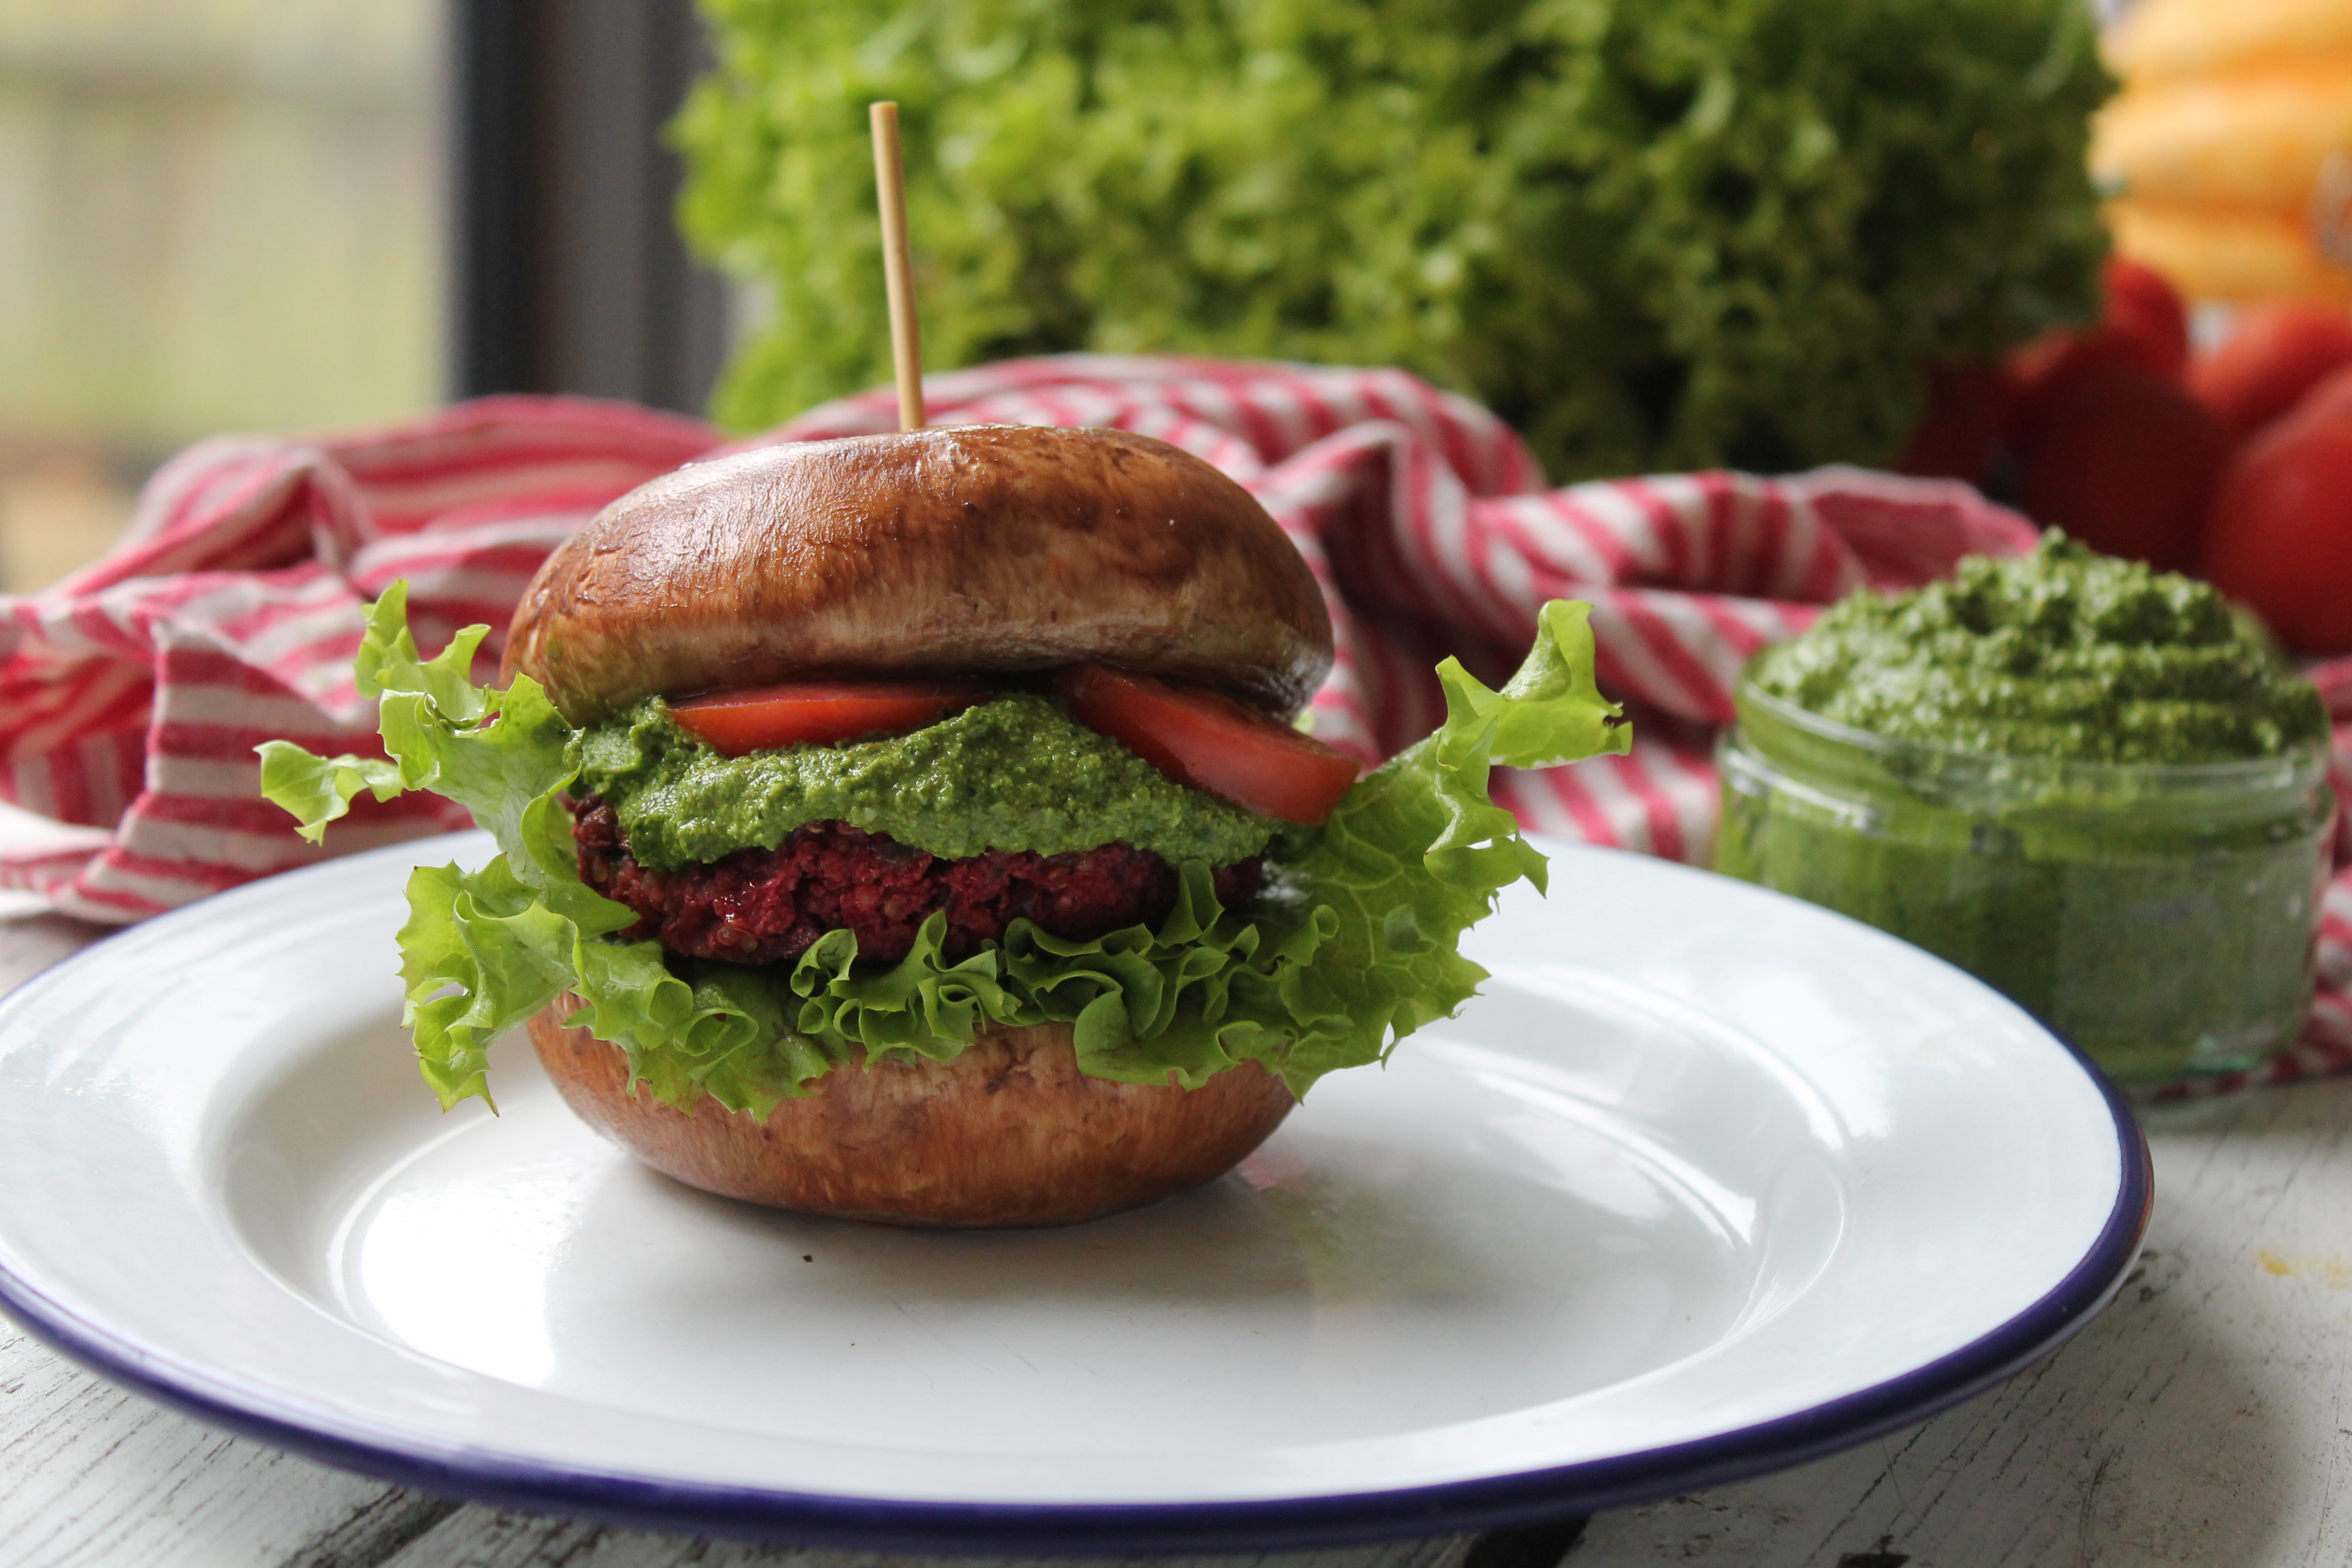 Beetroot and lentils burgers